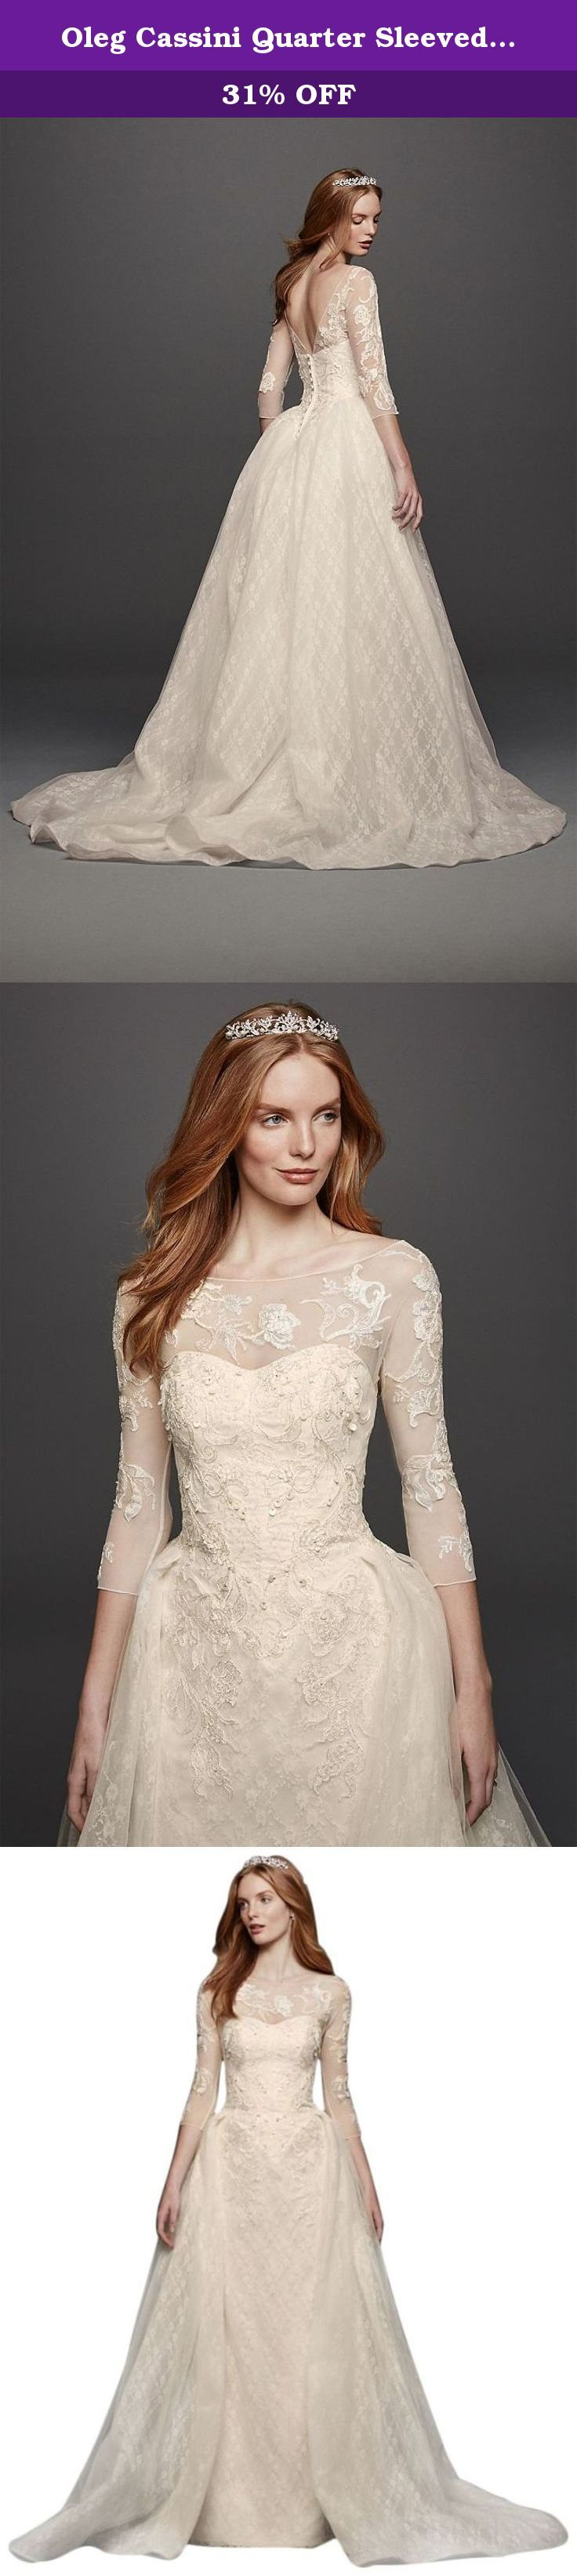 1000 ideas about wedding dress preservation on pinterest for Wedding dress preservation kit